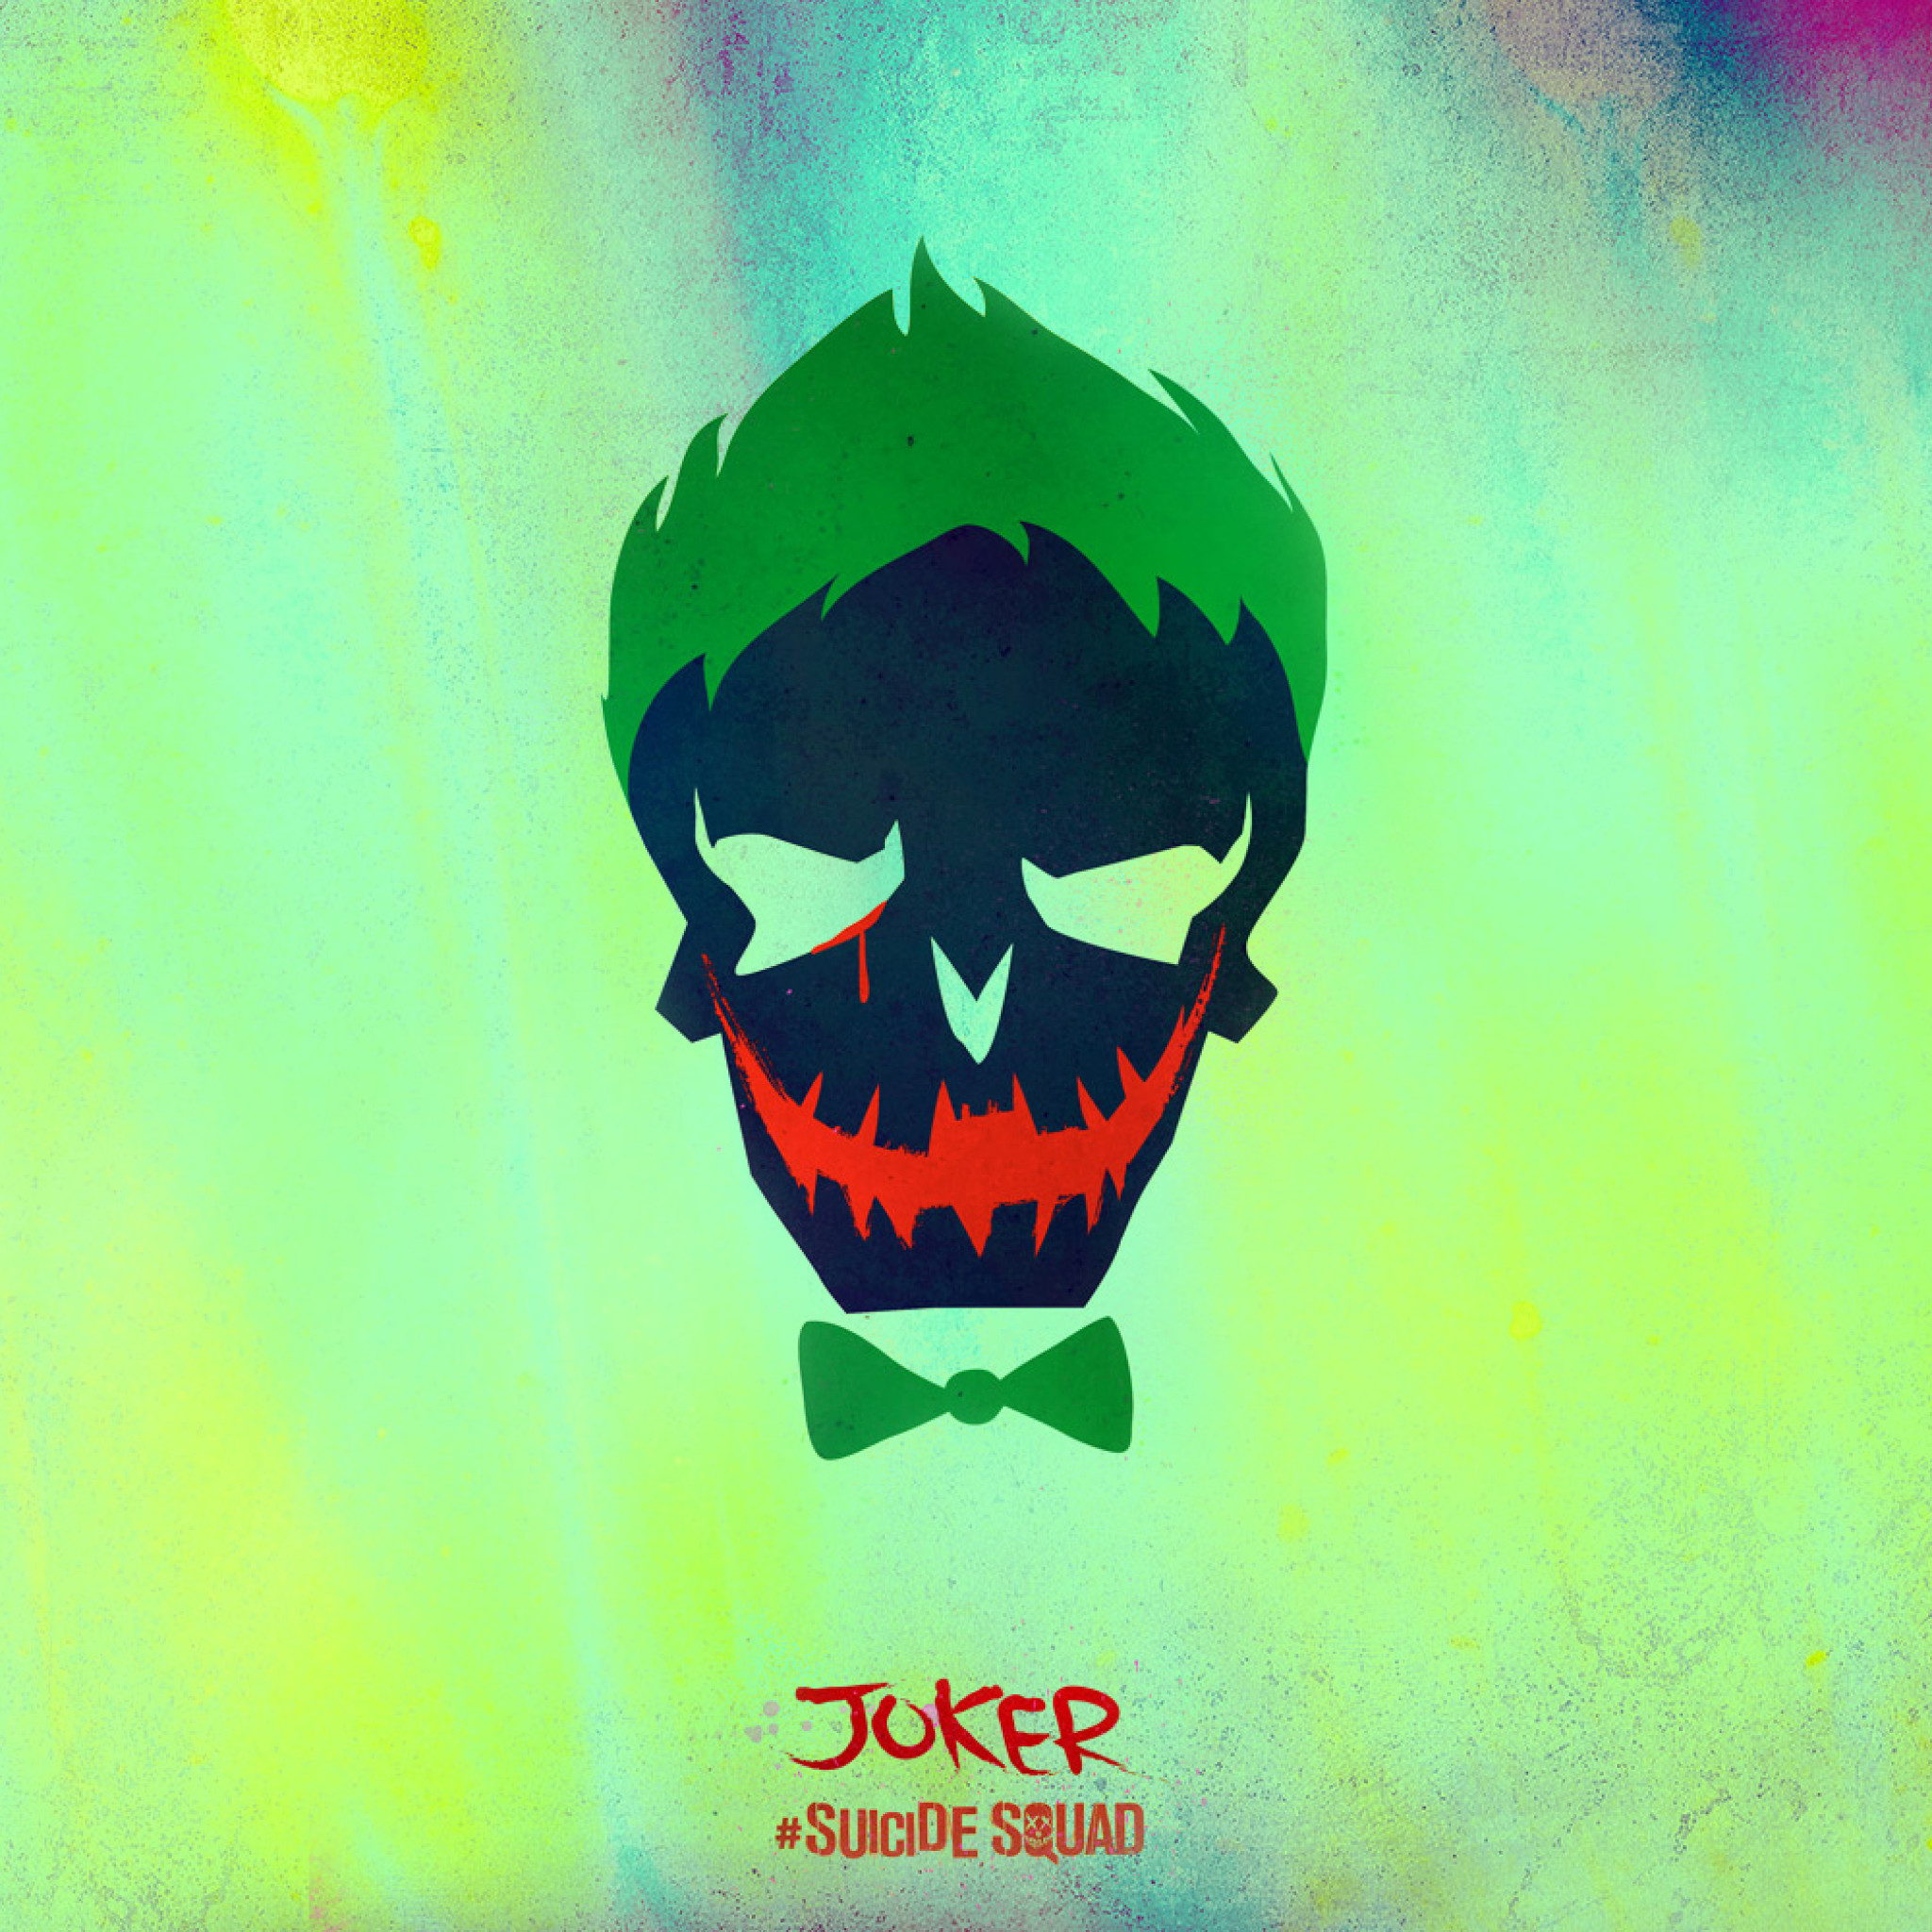 2048x2048 Joker - Tap to see more awesomely creative Suicide squad wallpapers!  @mobile9